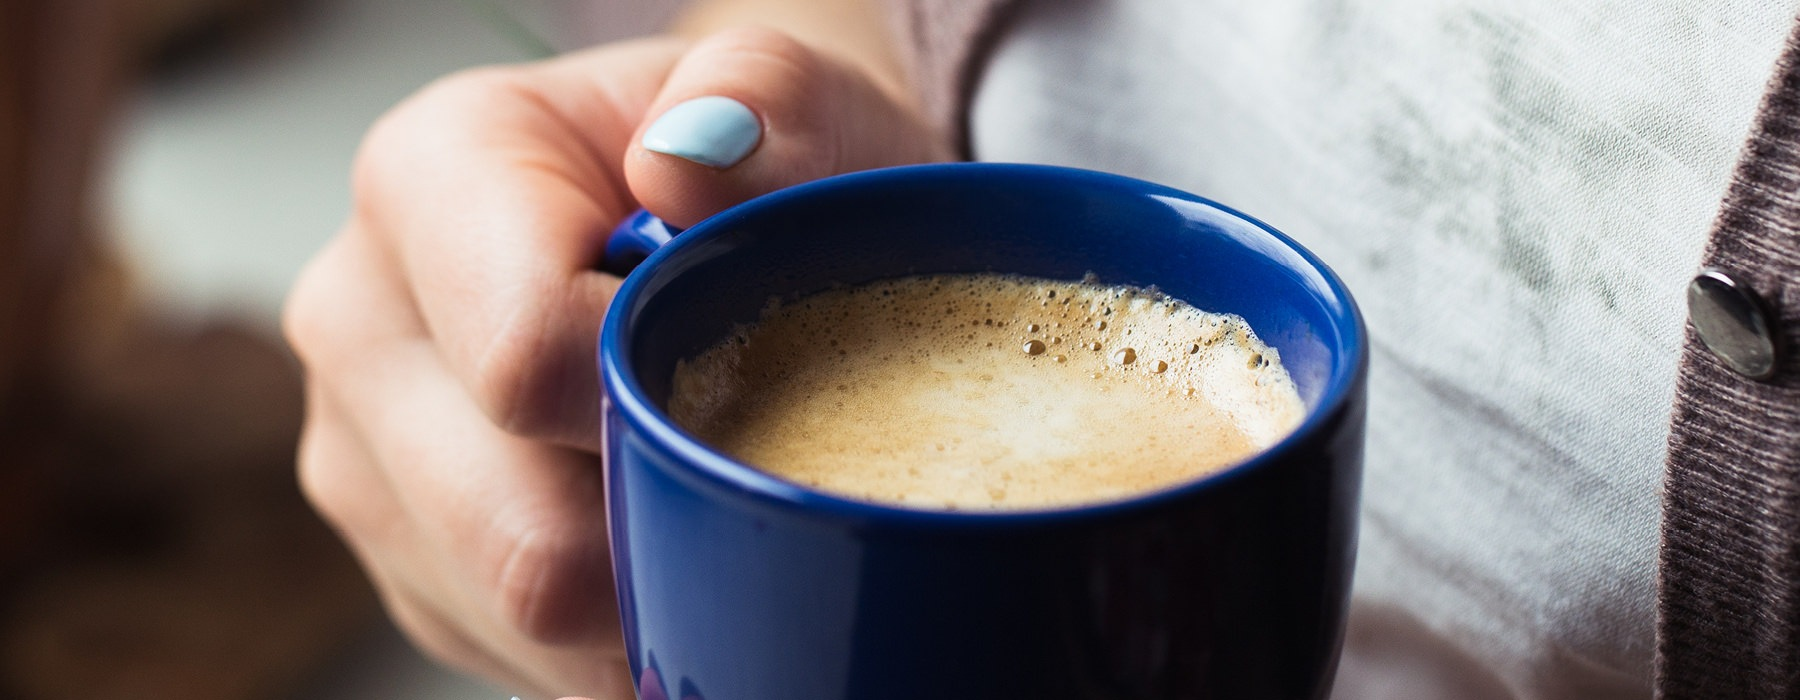 close up of a woman's hand holding a mug of coffee